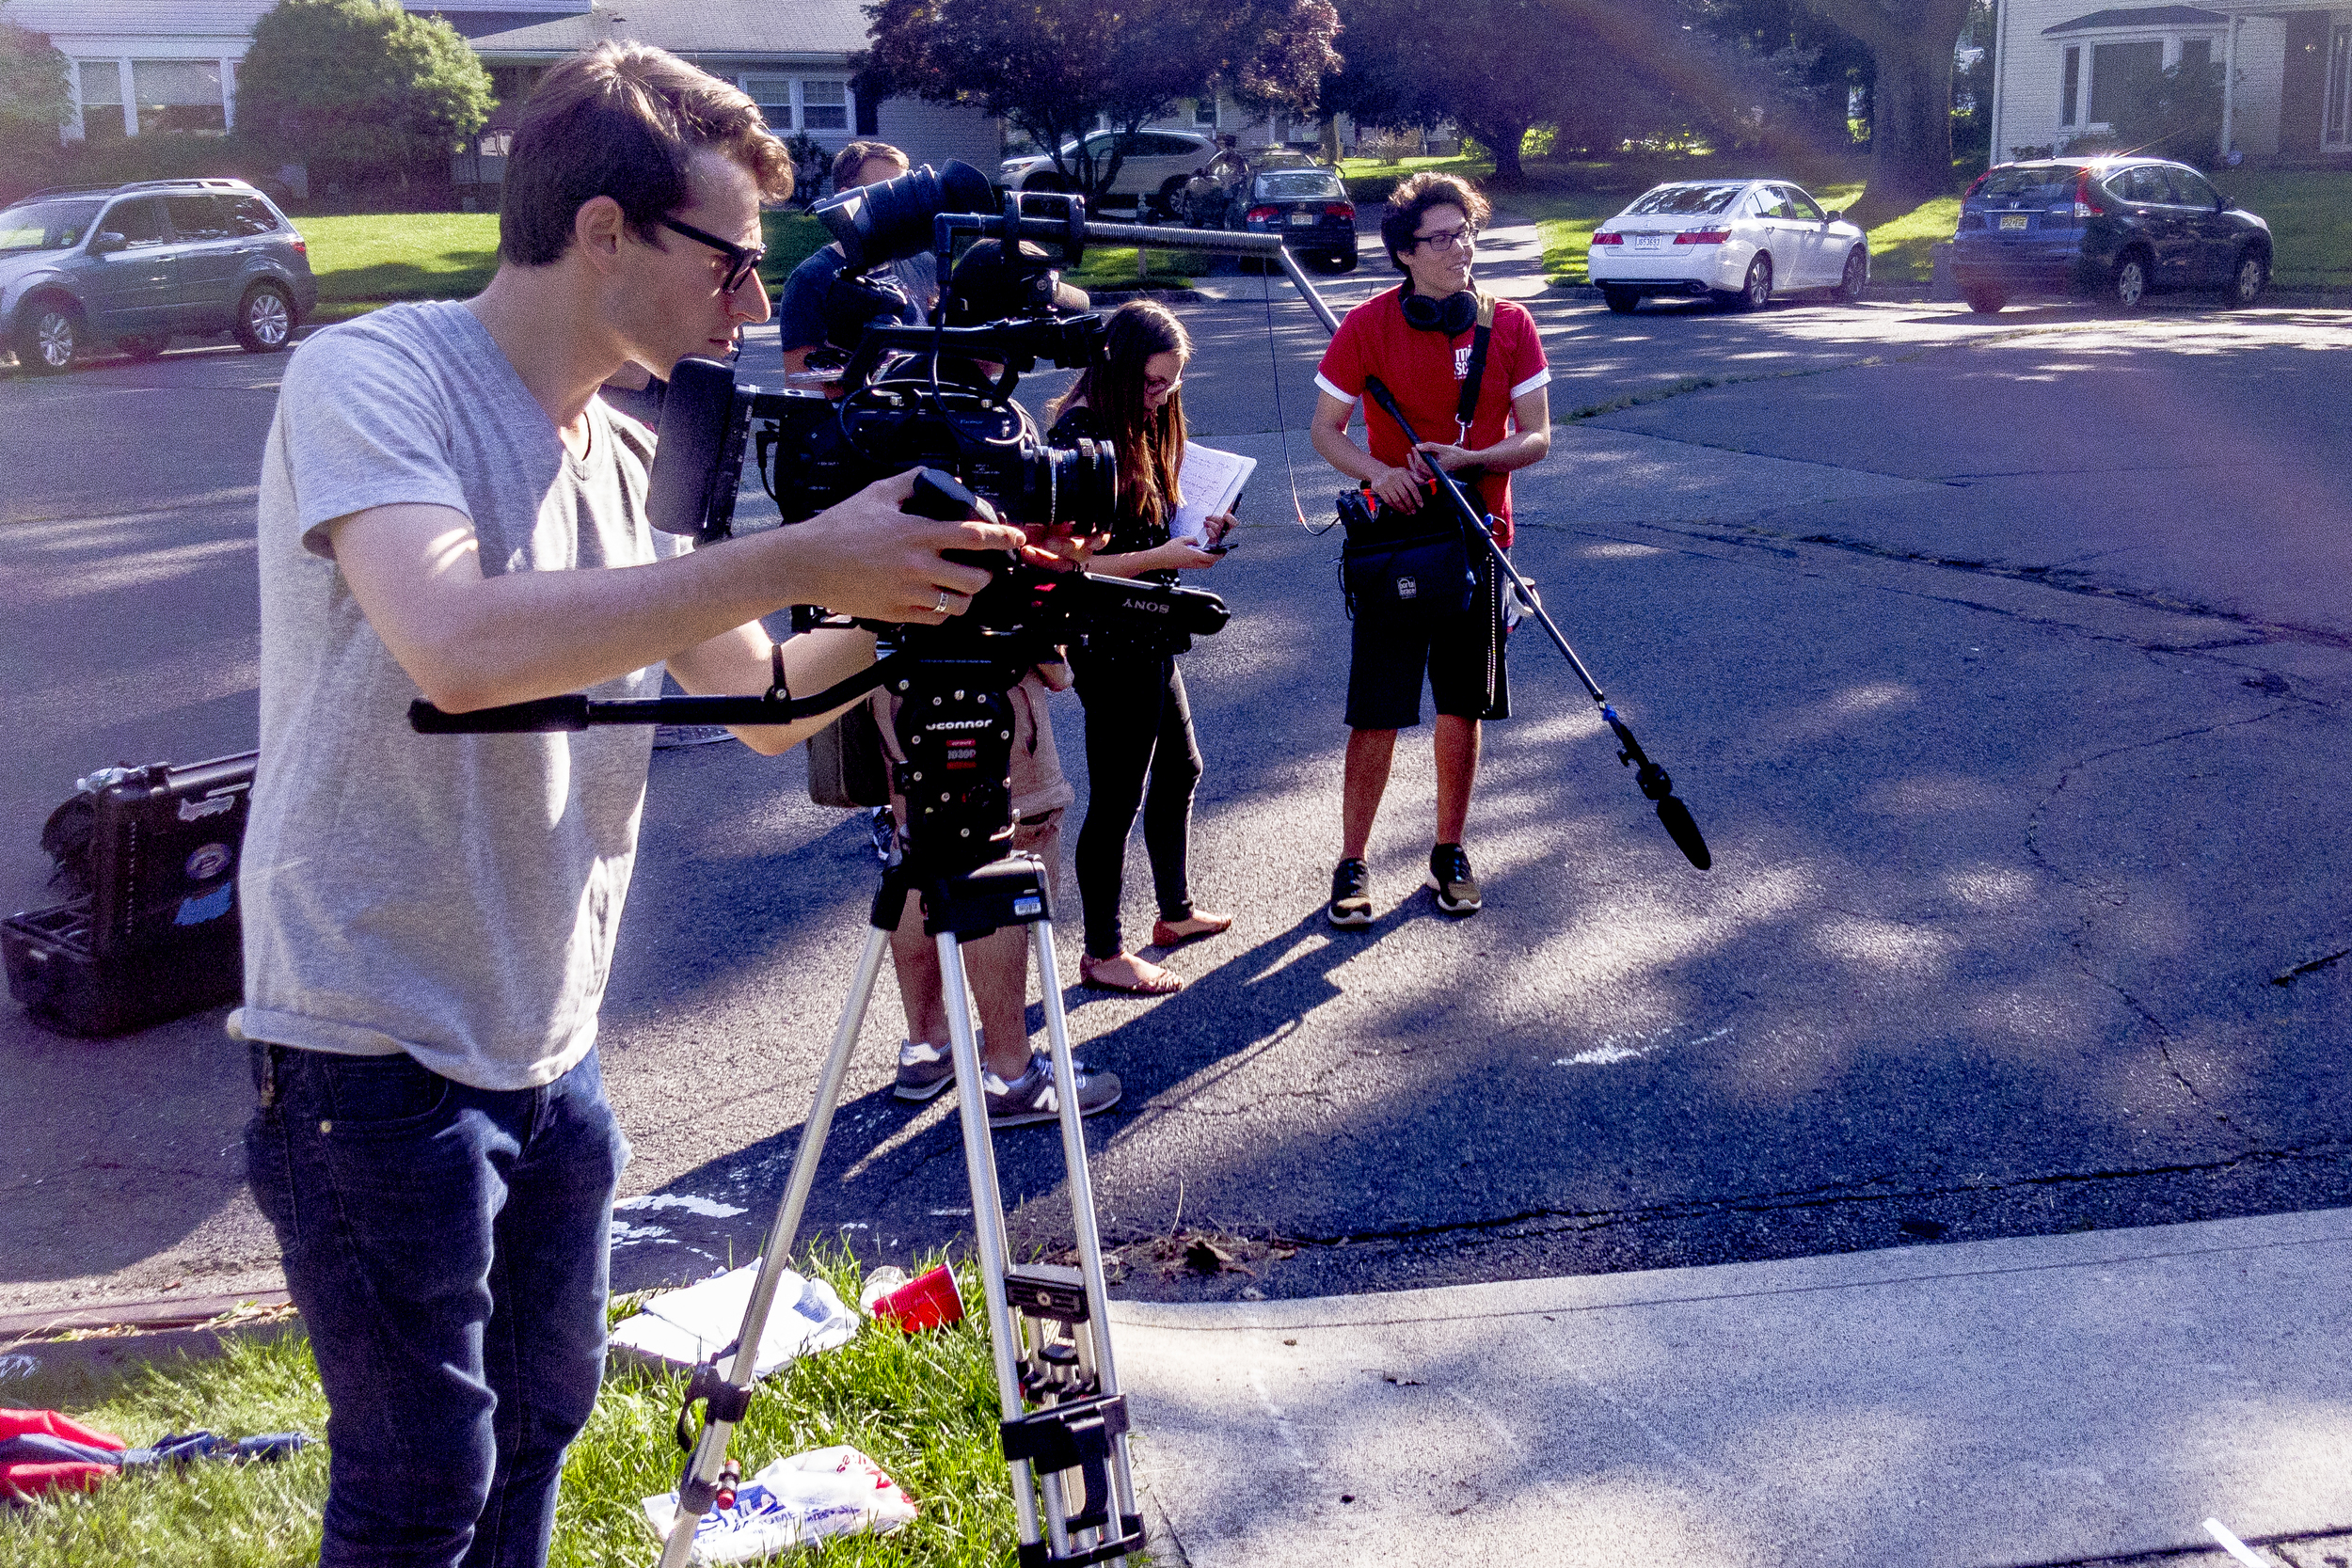 On set with the FS7.